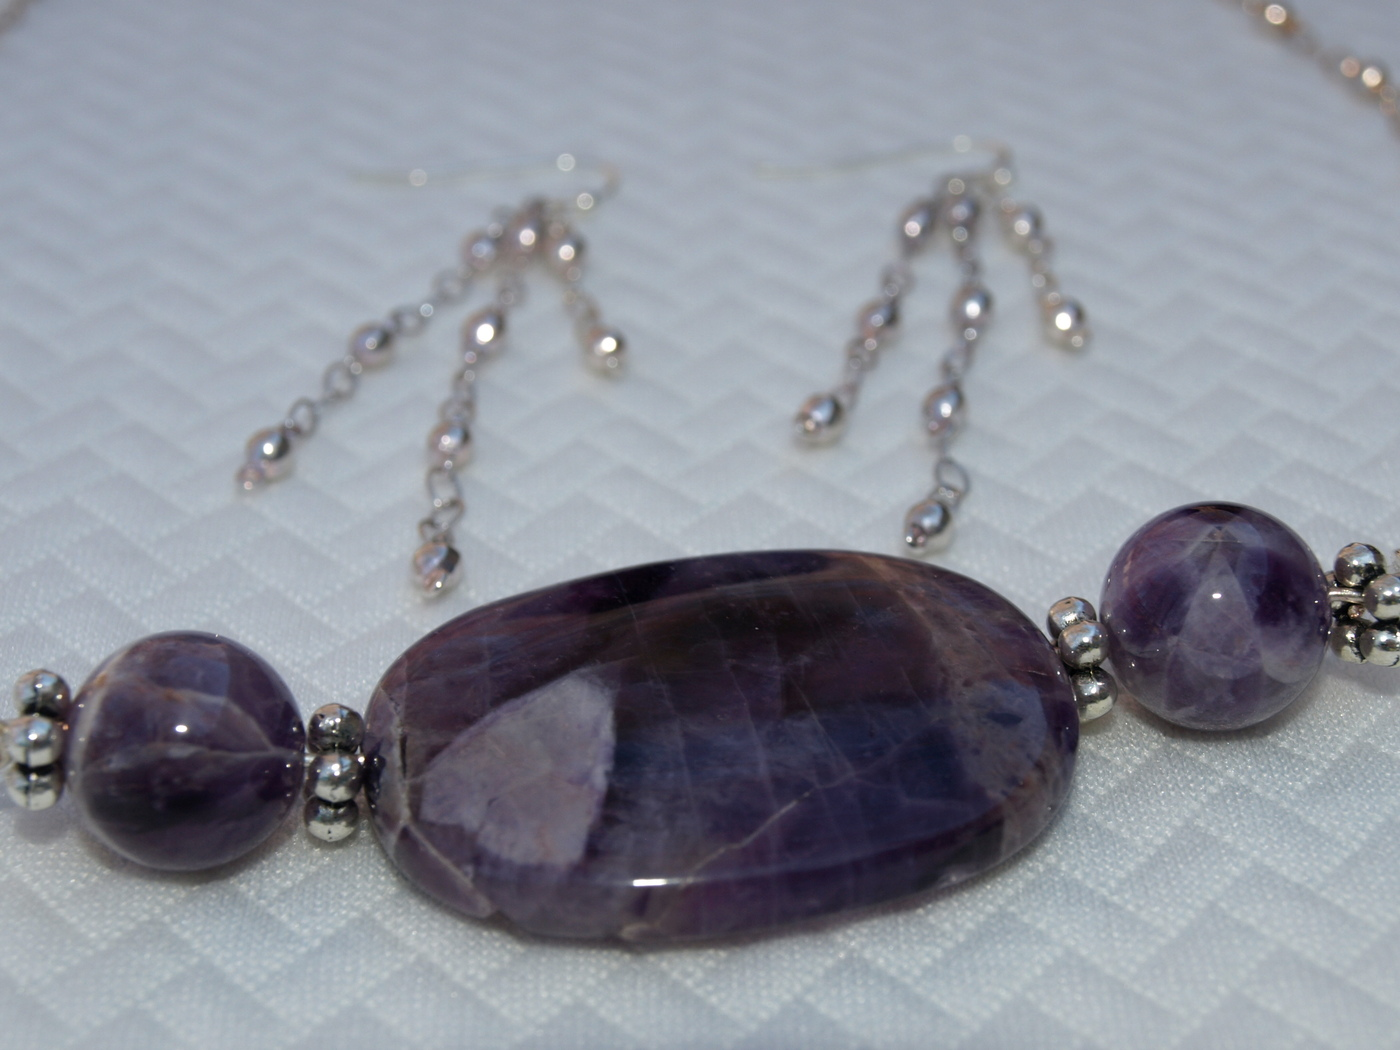 Cape Amethyst Necklace - handmade of